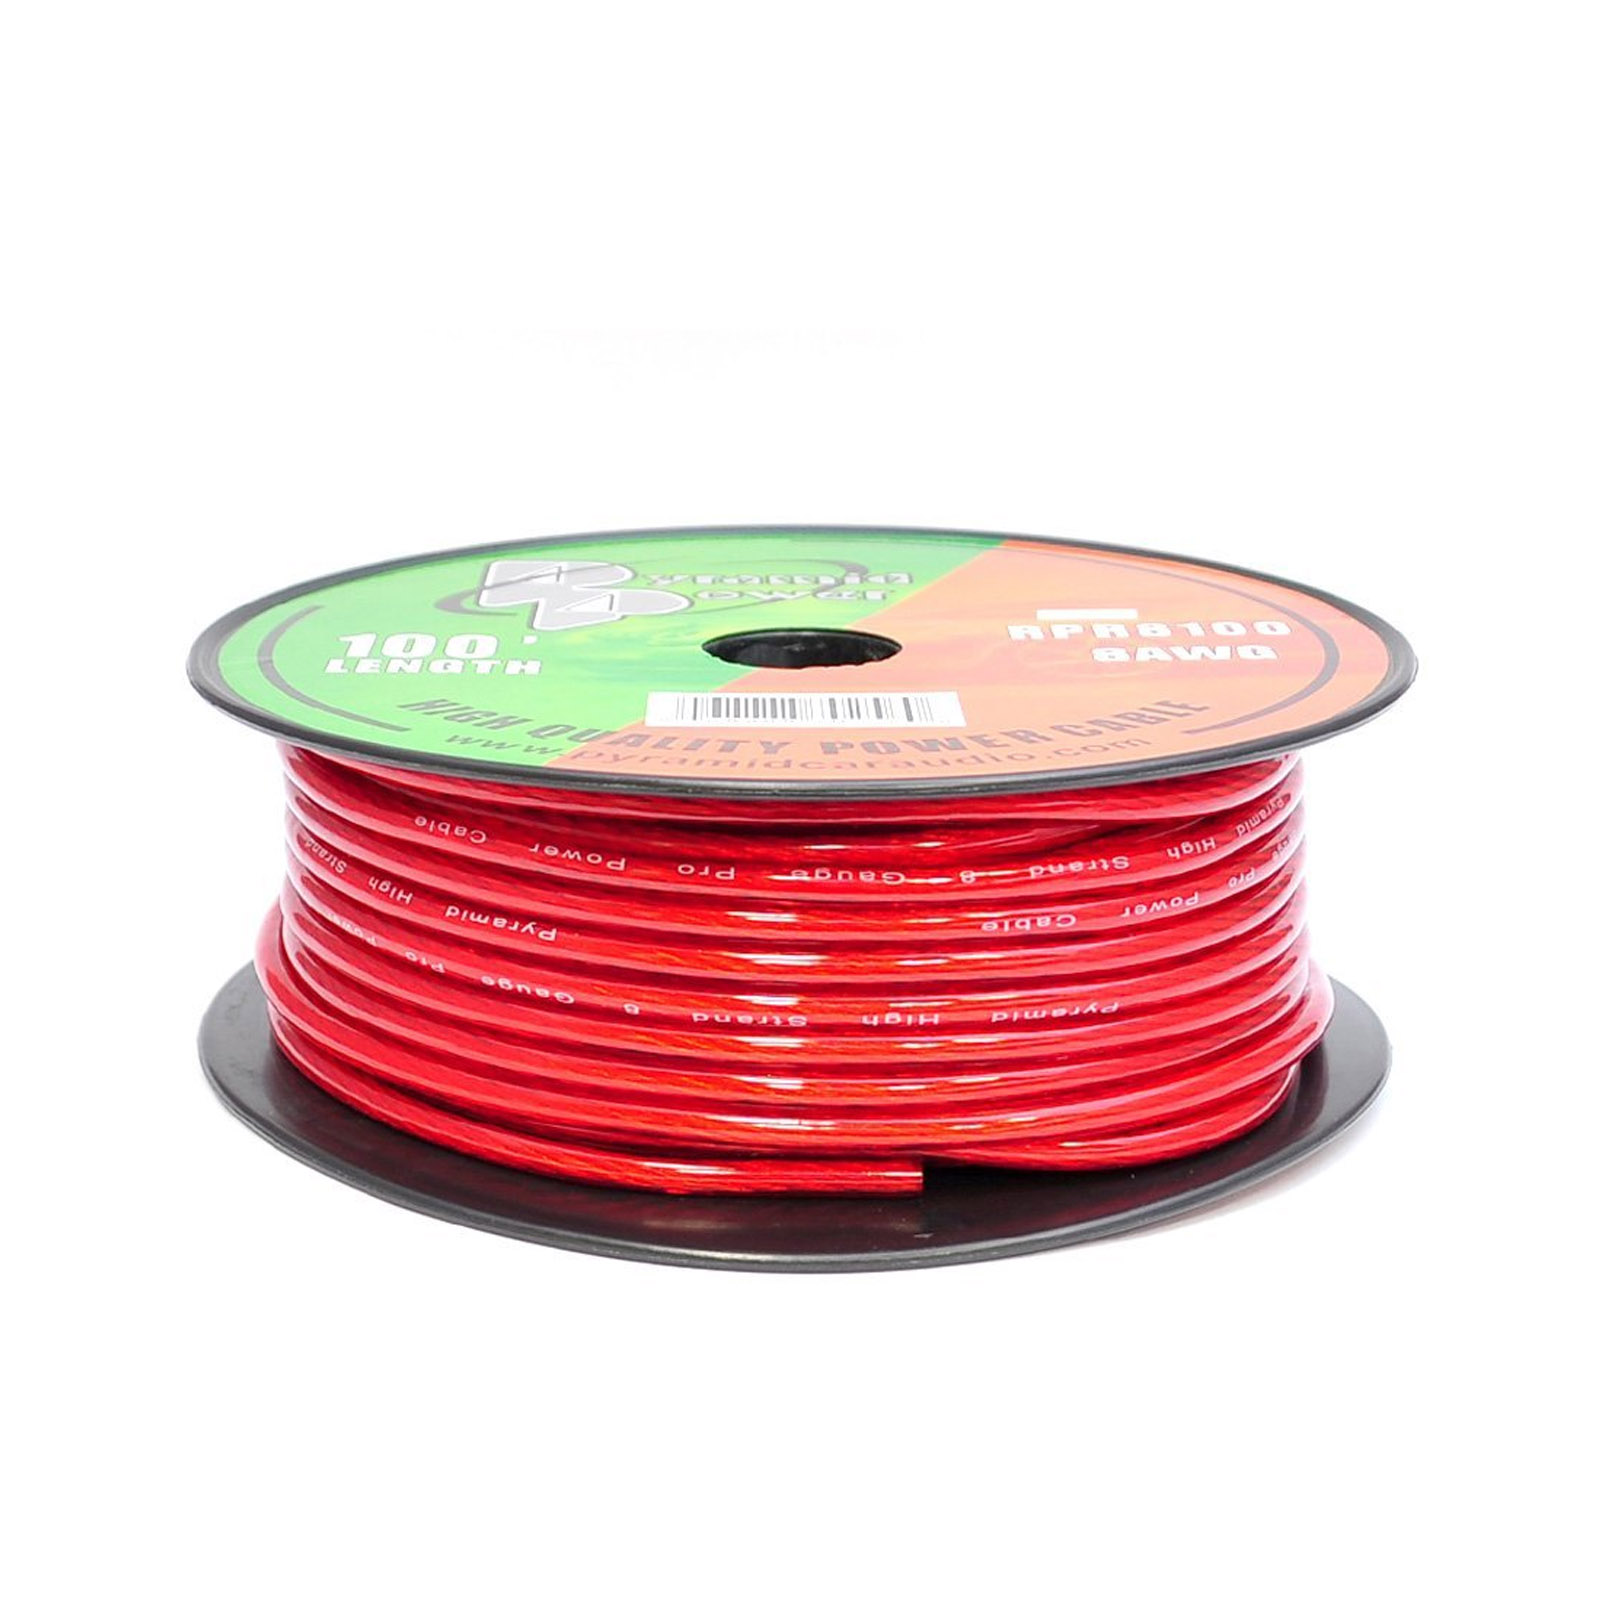 Pyramid 8 Gauge Clear Red Power Wire 100 ft. OFC